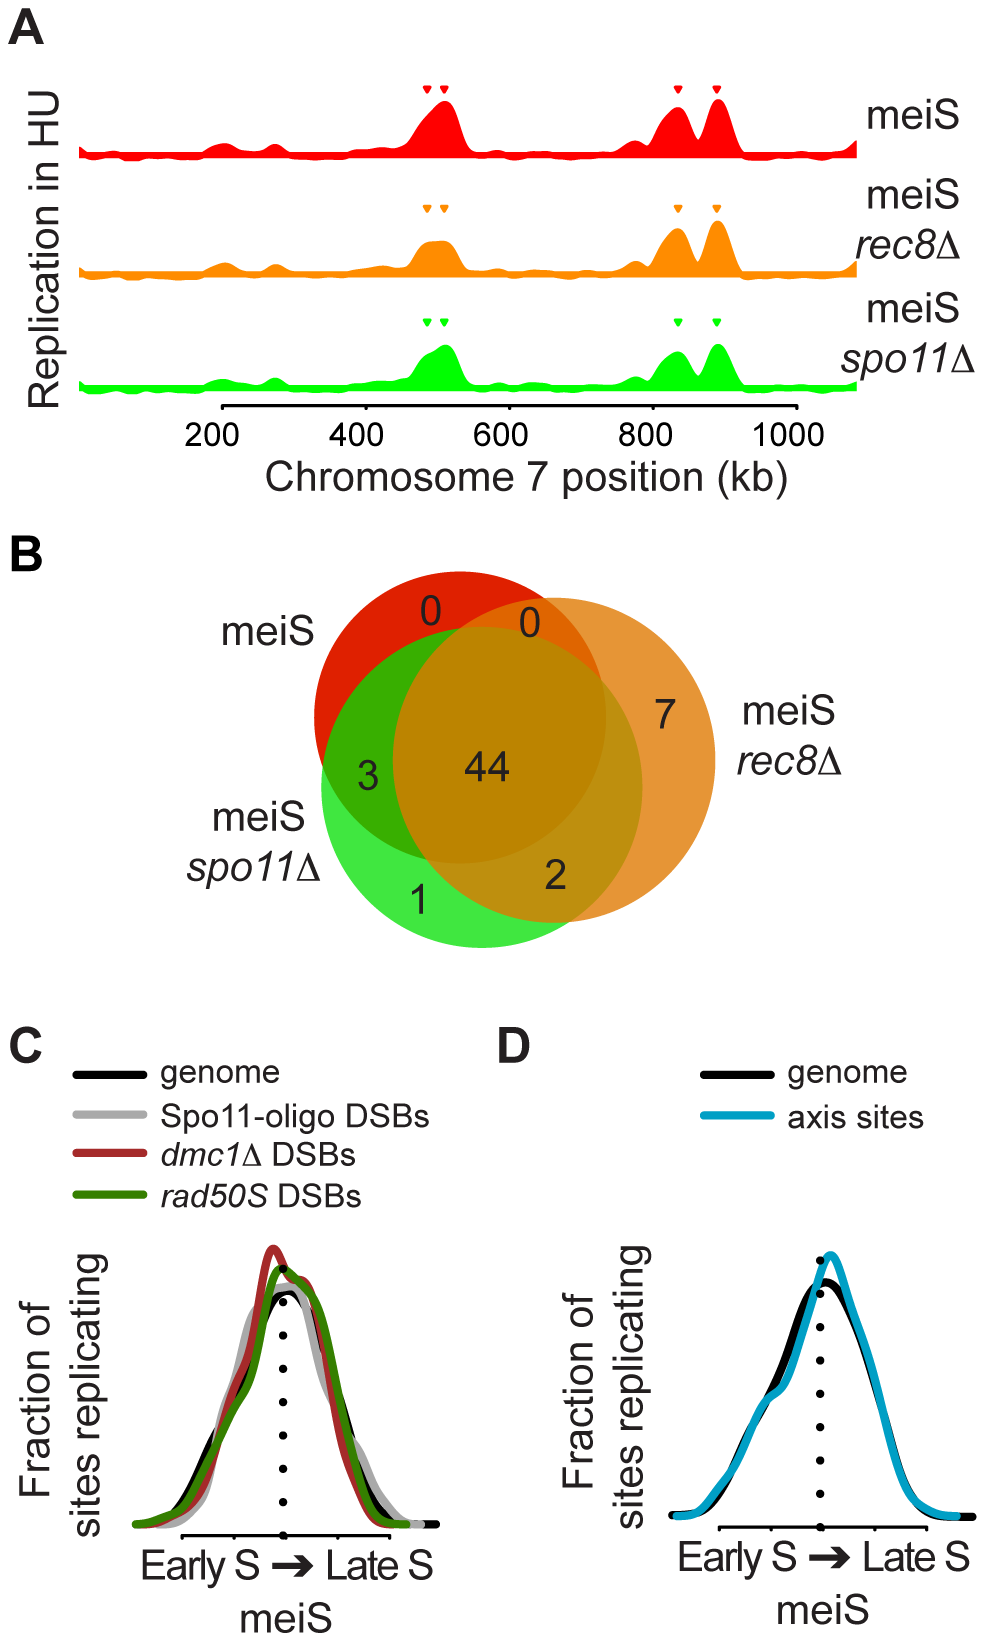 No relationship between DNA replication timing and recombination sites.